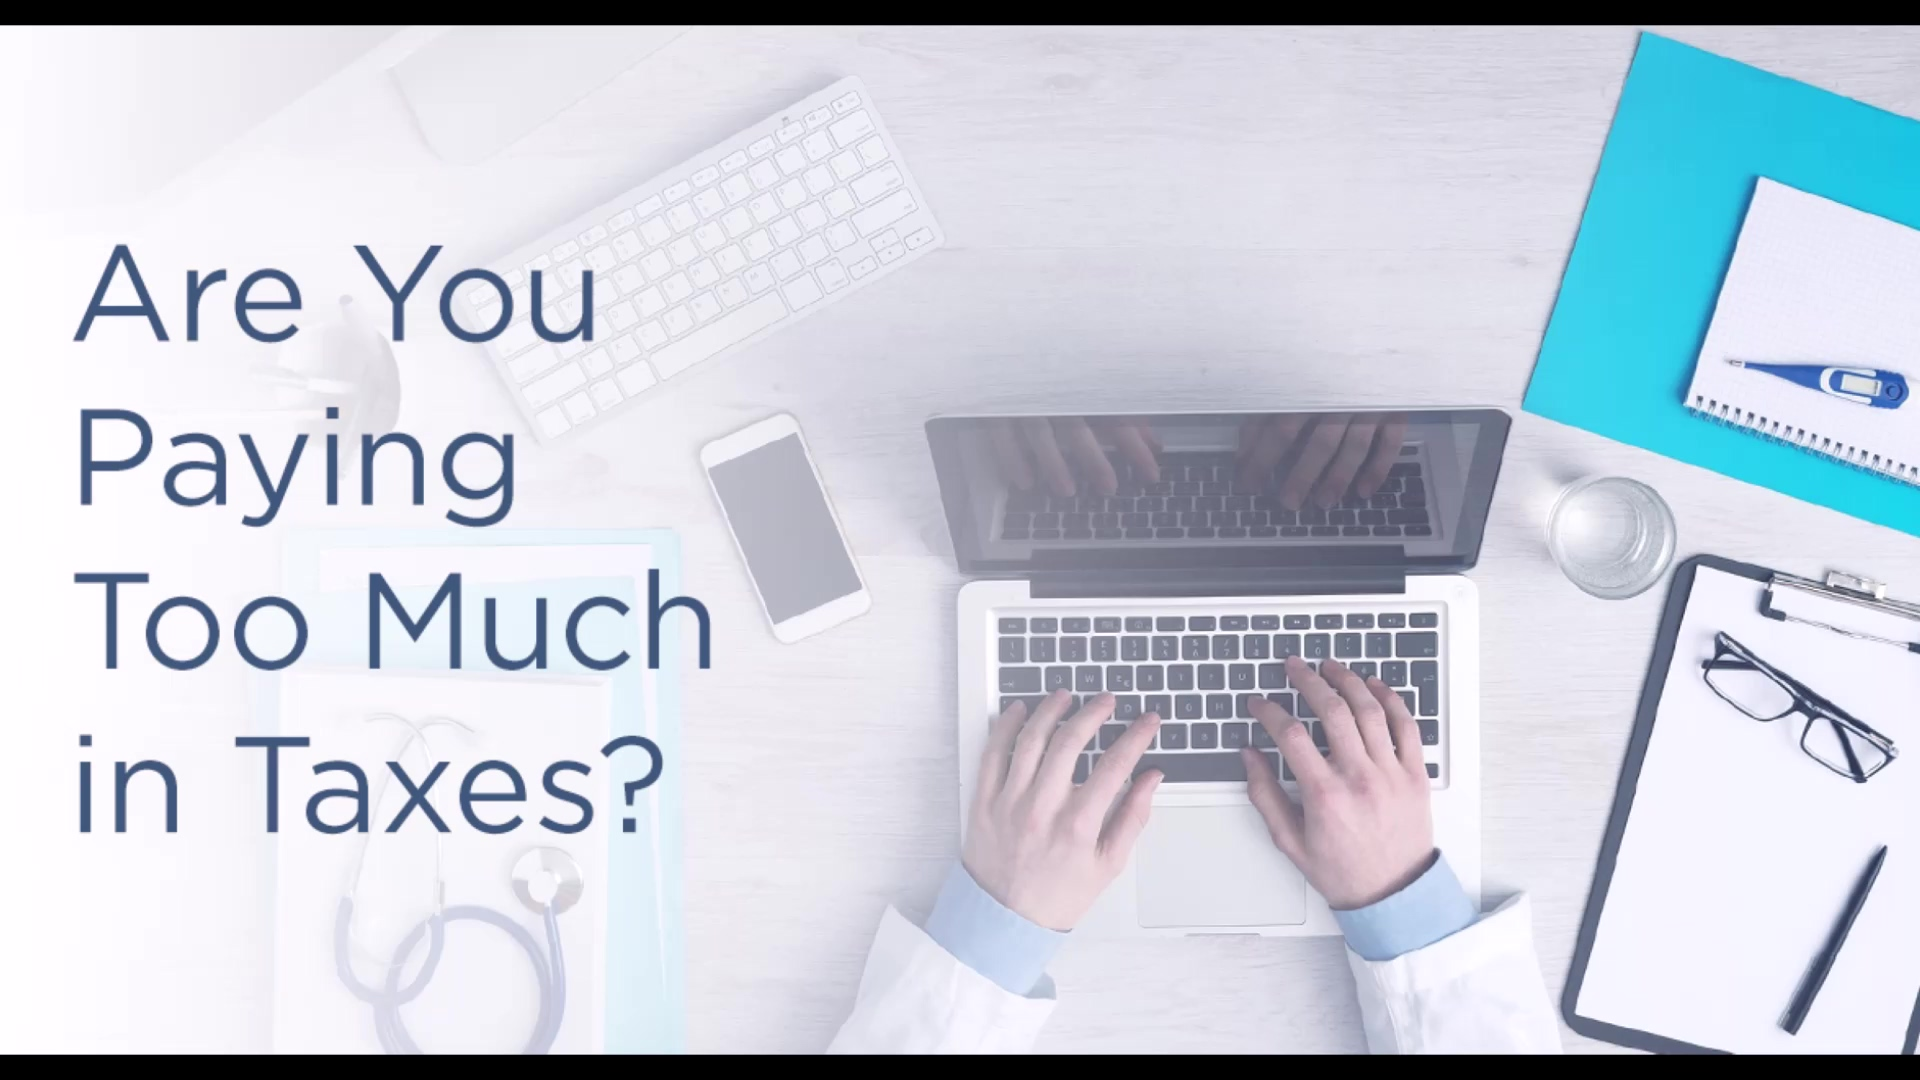 Are You Paying Too Much in Taxes - Video